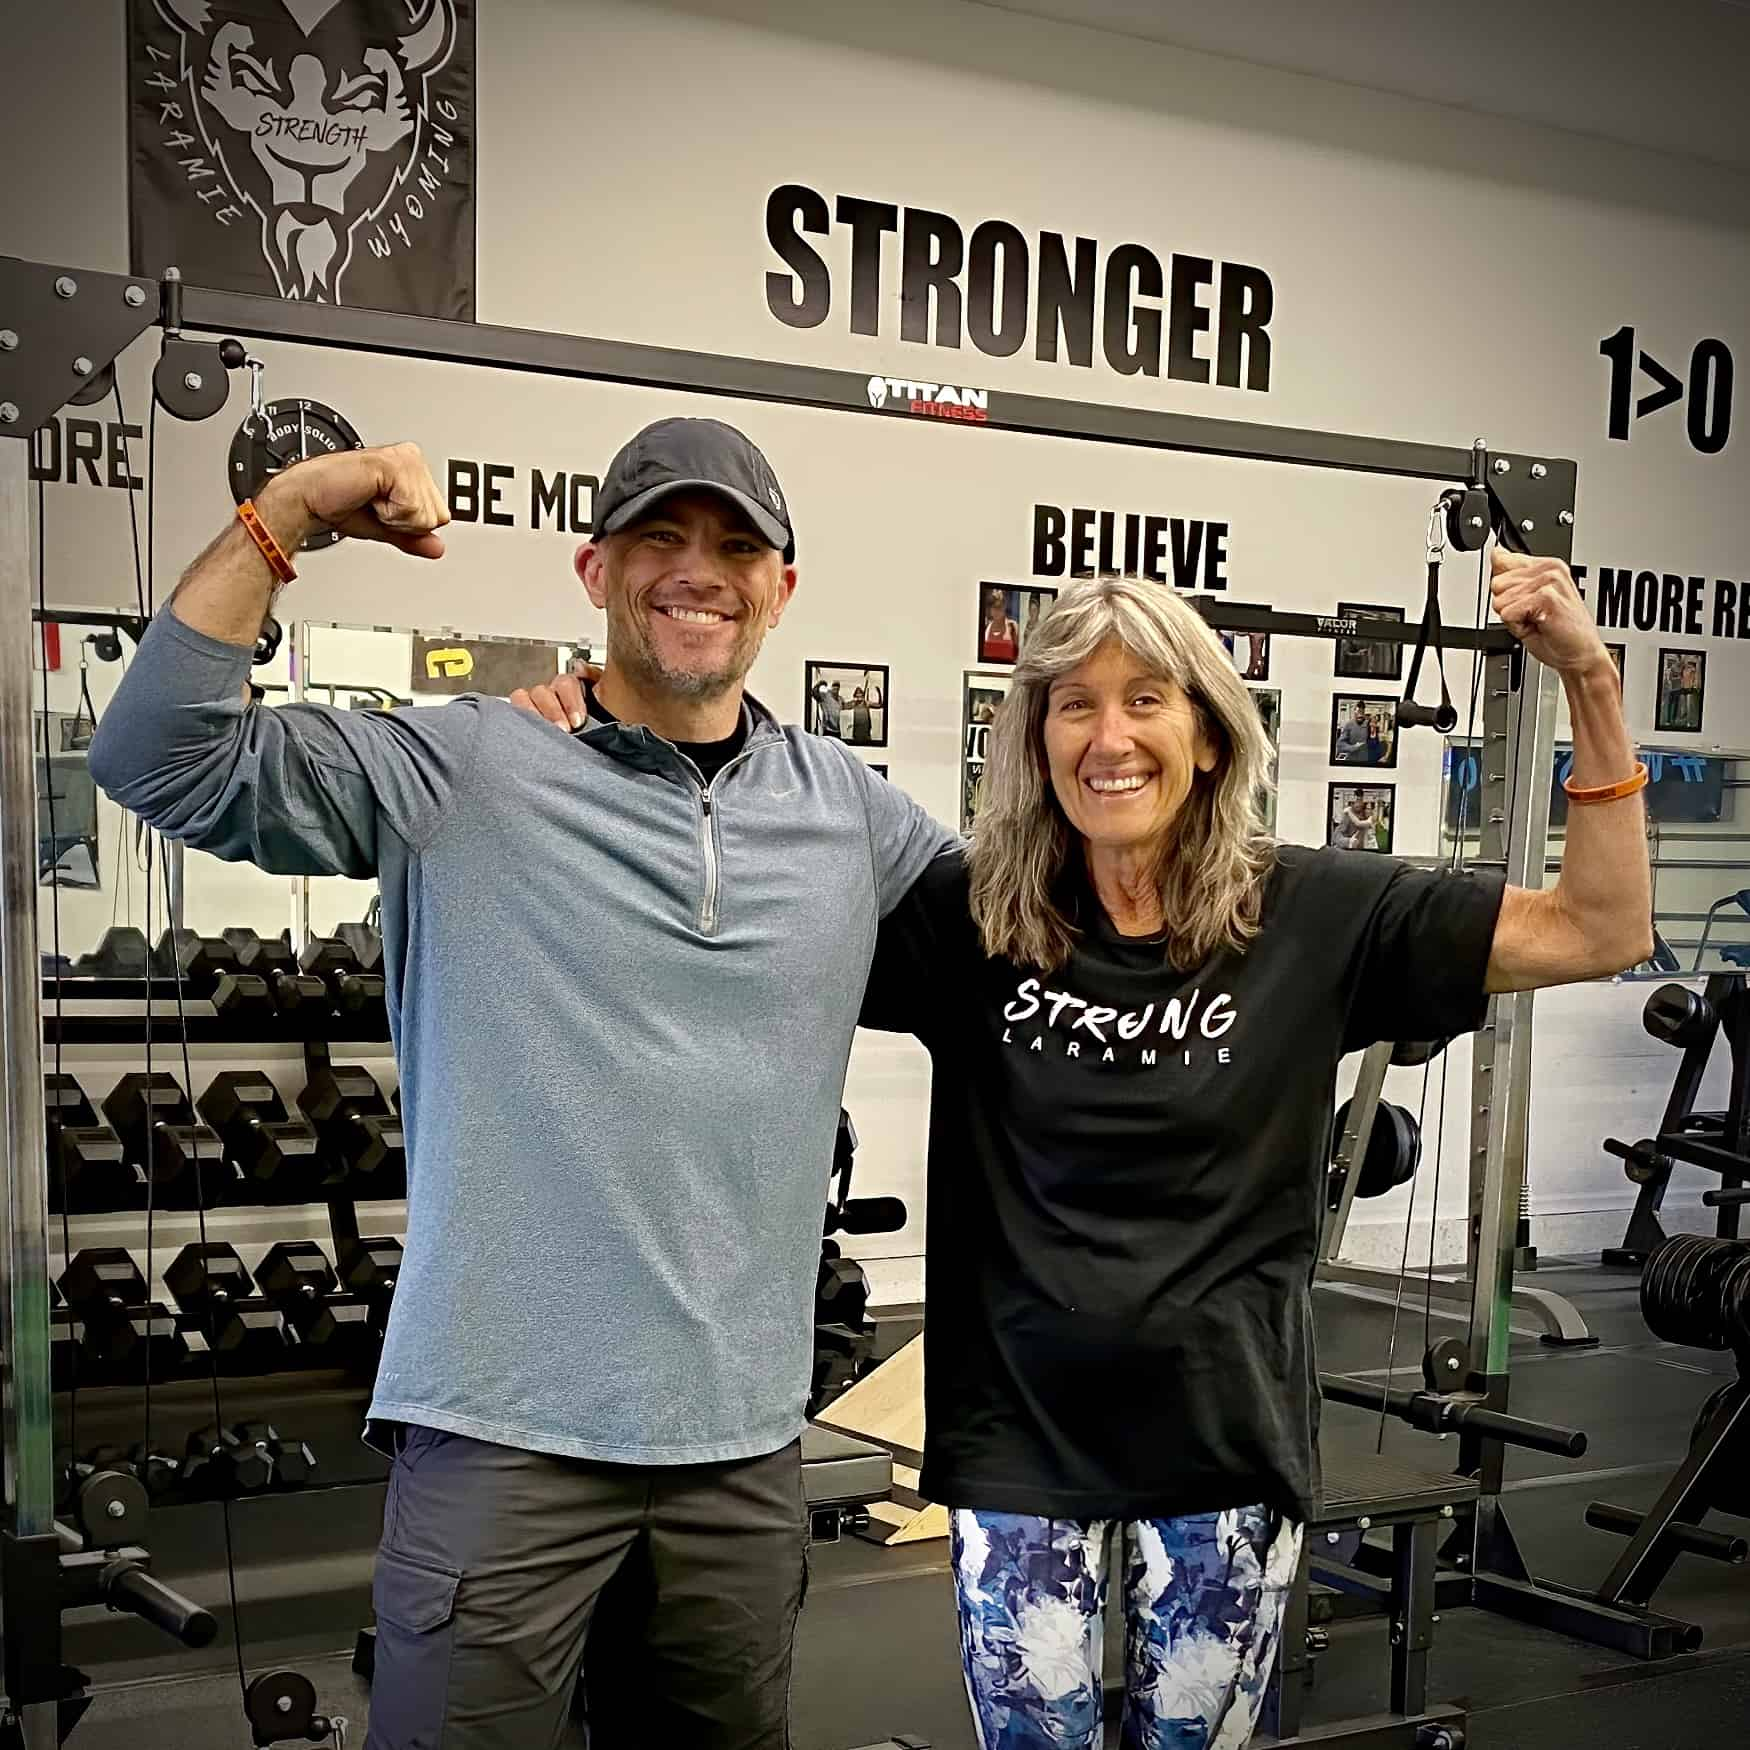 Mary Byrnes Transforming Strength Personal Training Review